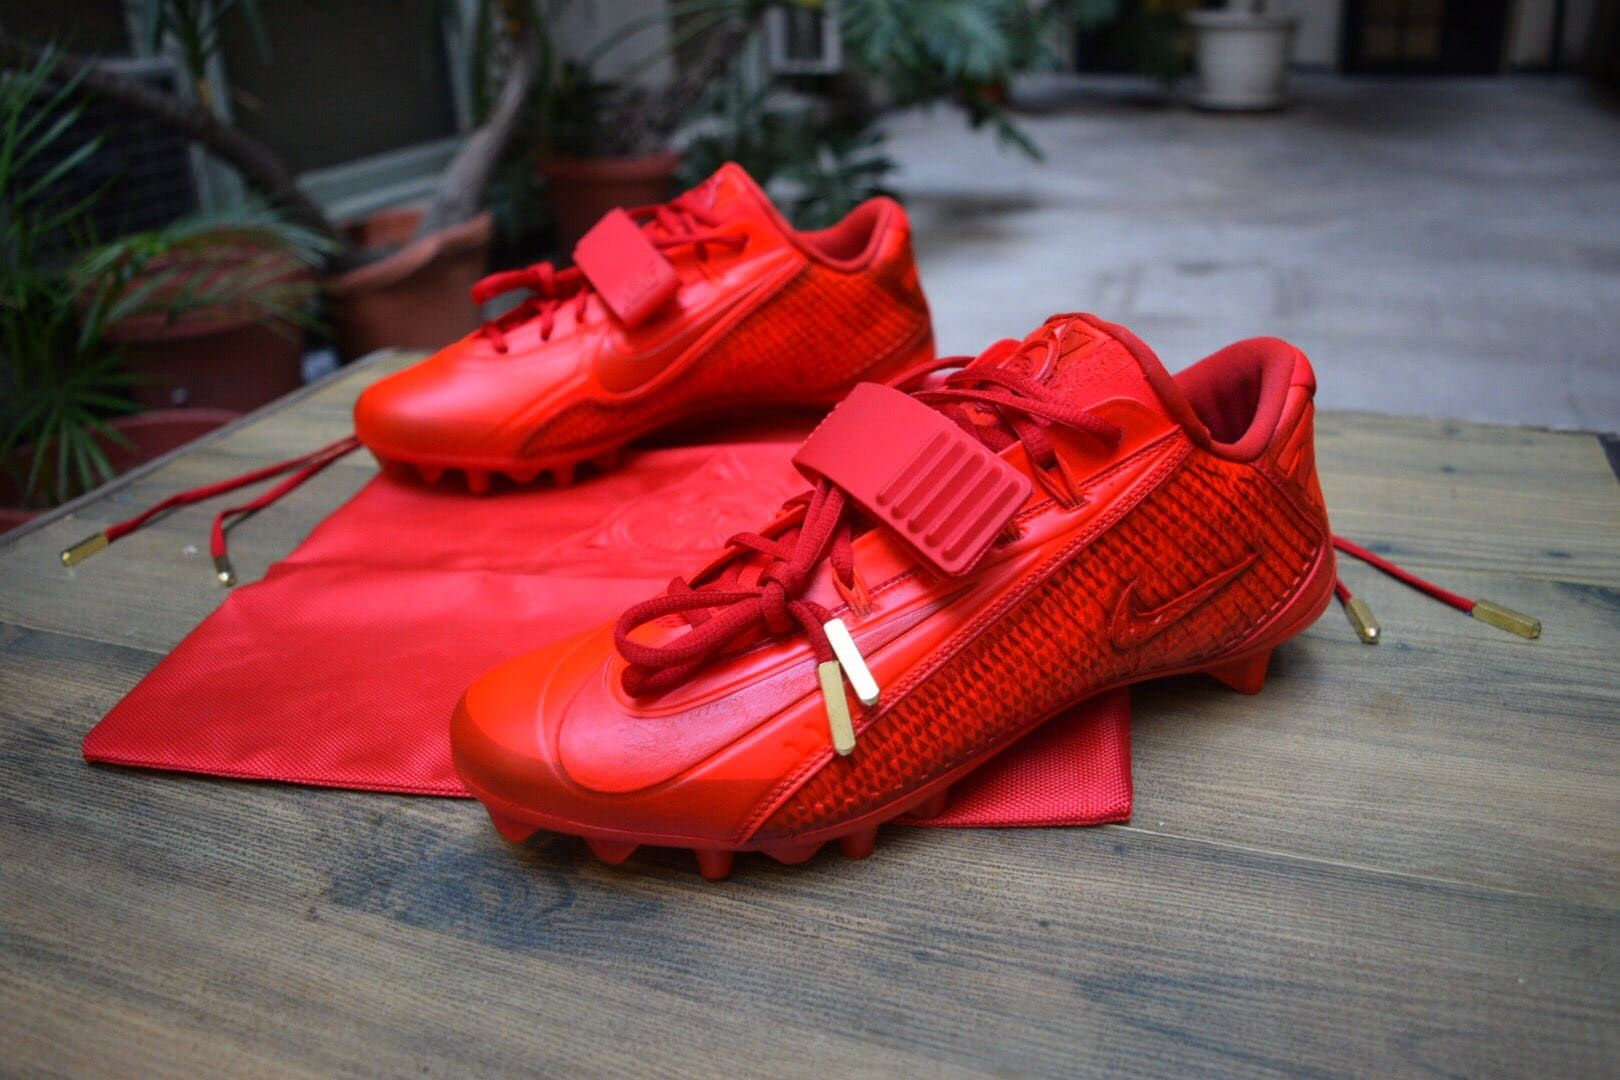 Red October Yeezy Cleats Odell Beckham by Kickasso | Football Gear ...